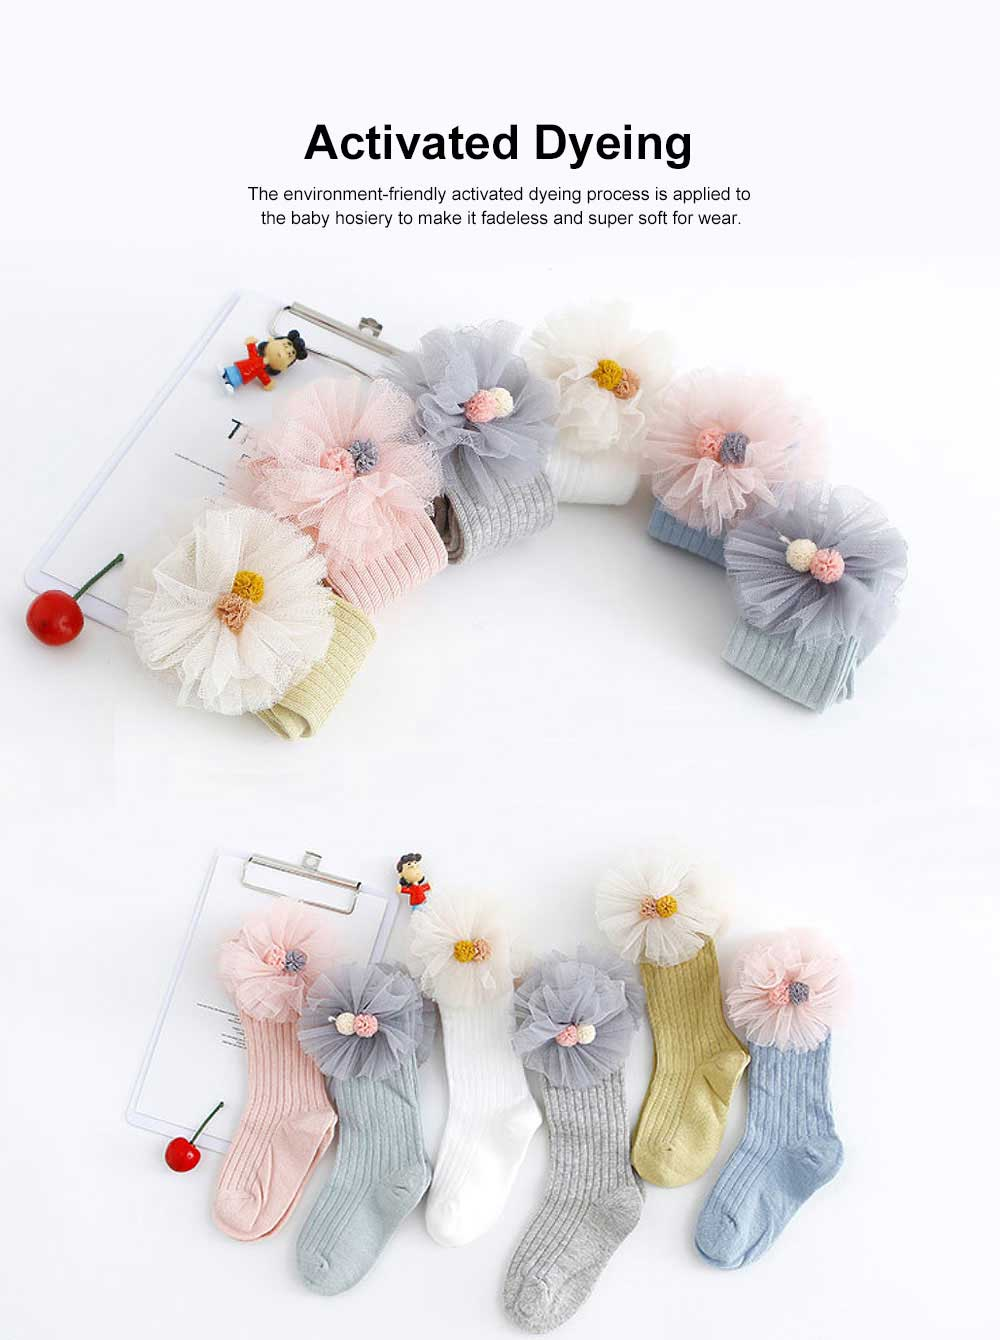 6pcs Mid-calf Length Socks for Baby, Throughout Whole Year Combed Cotton Thin Stockings, Lace Socks Baby Hosiery 1